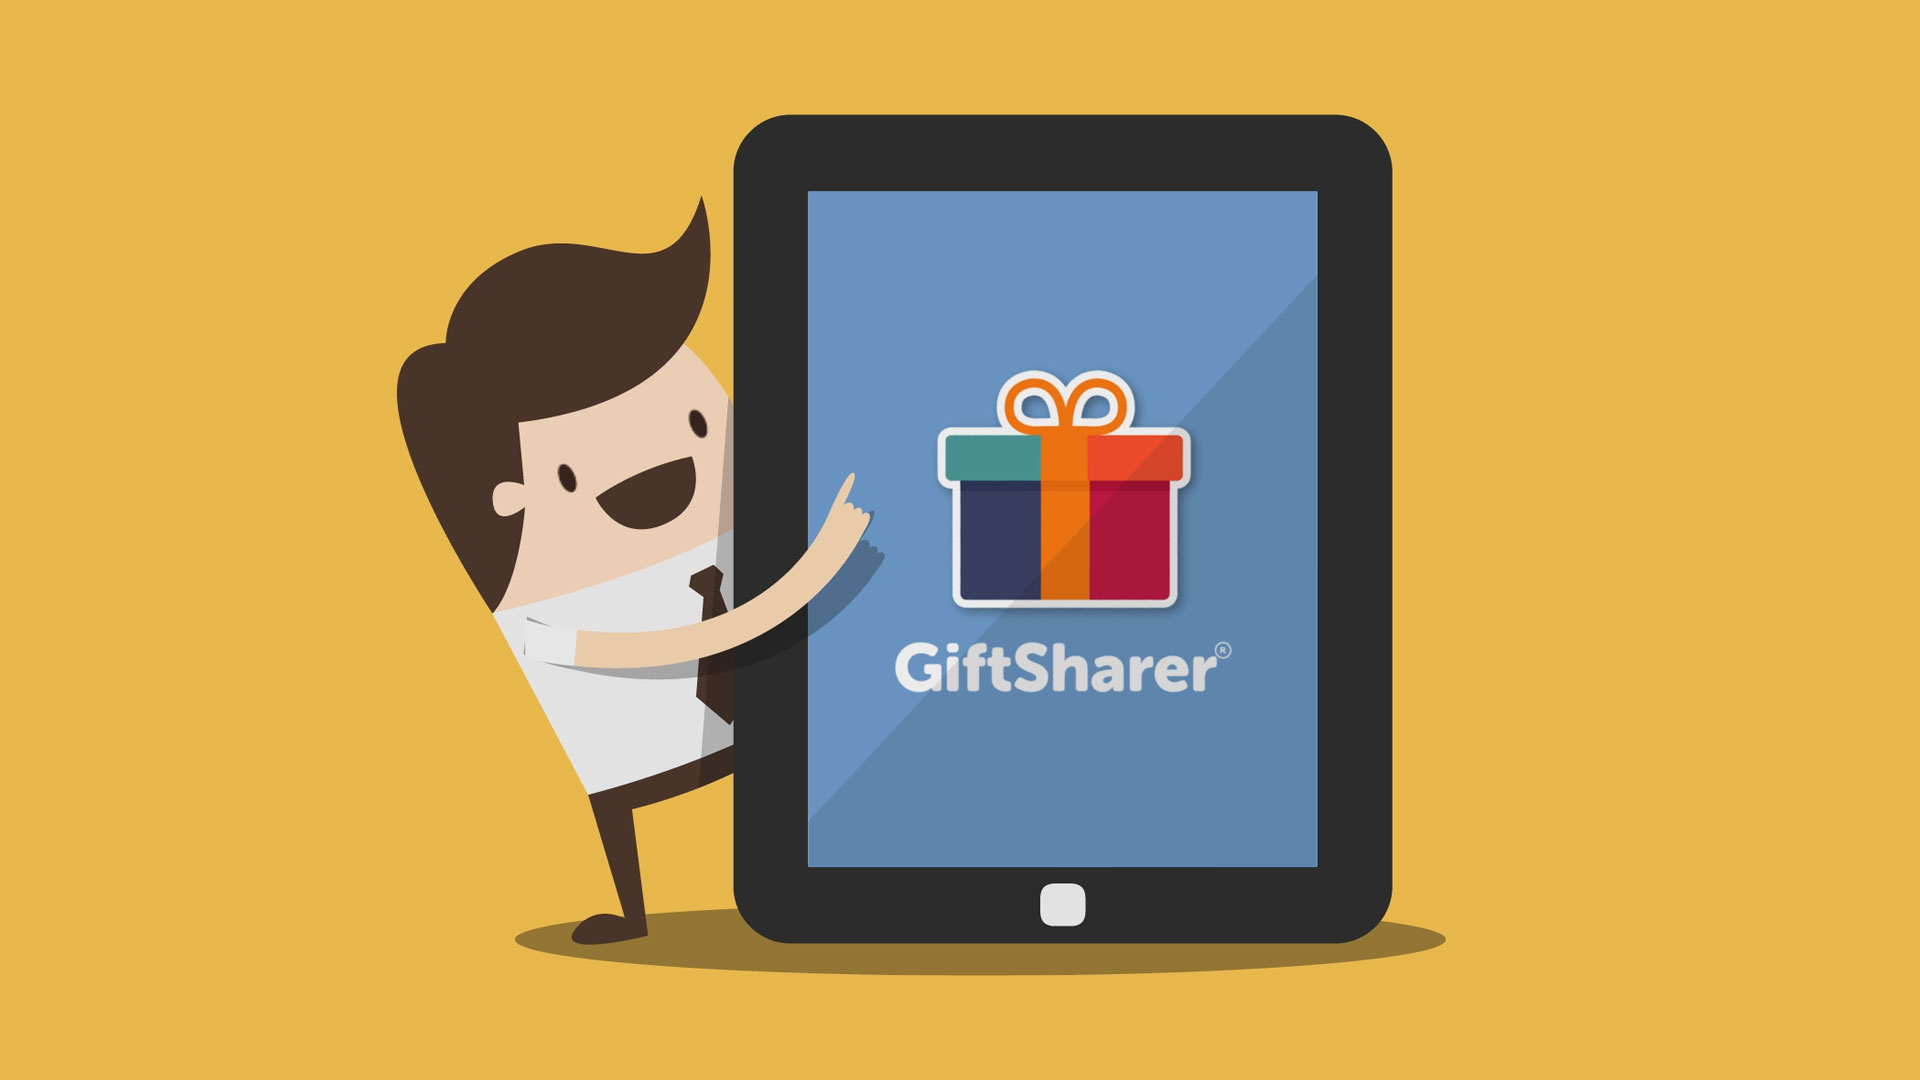 Giftsharer marketing video